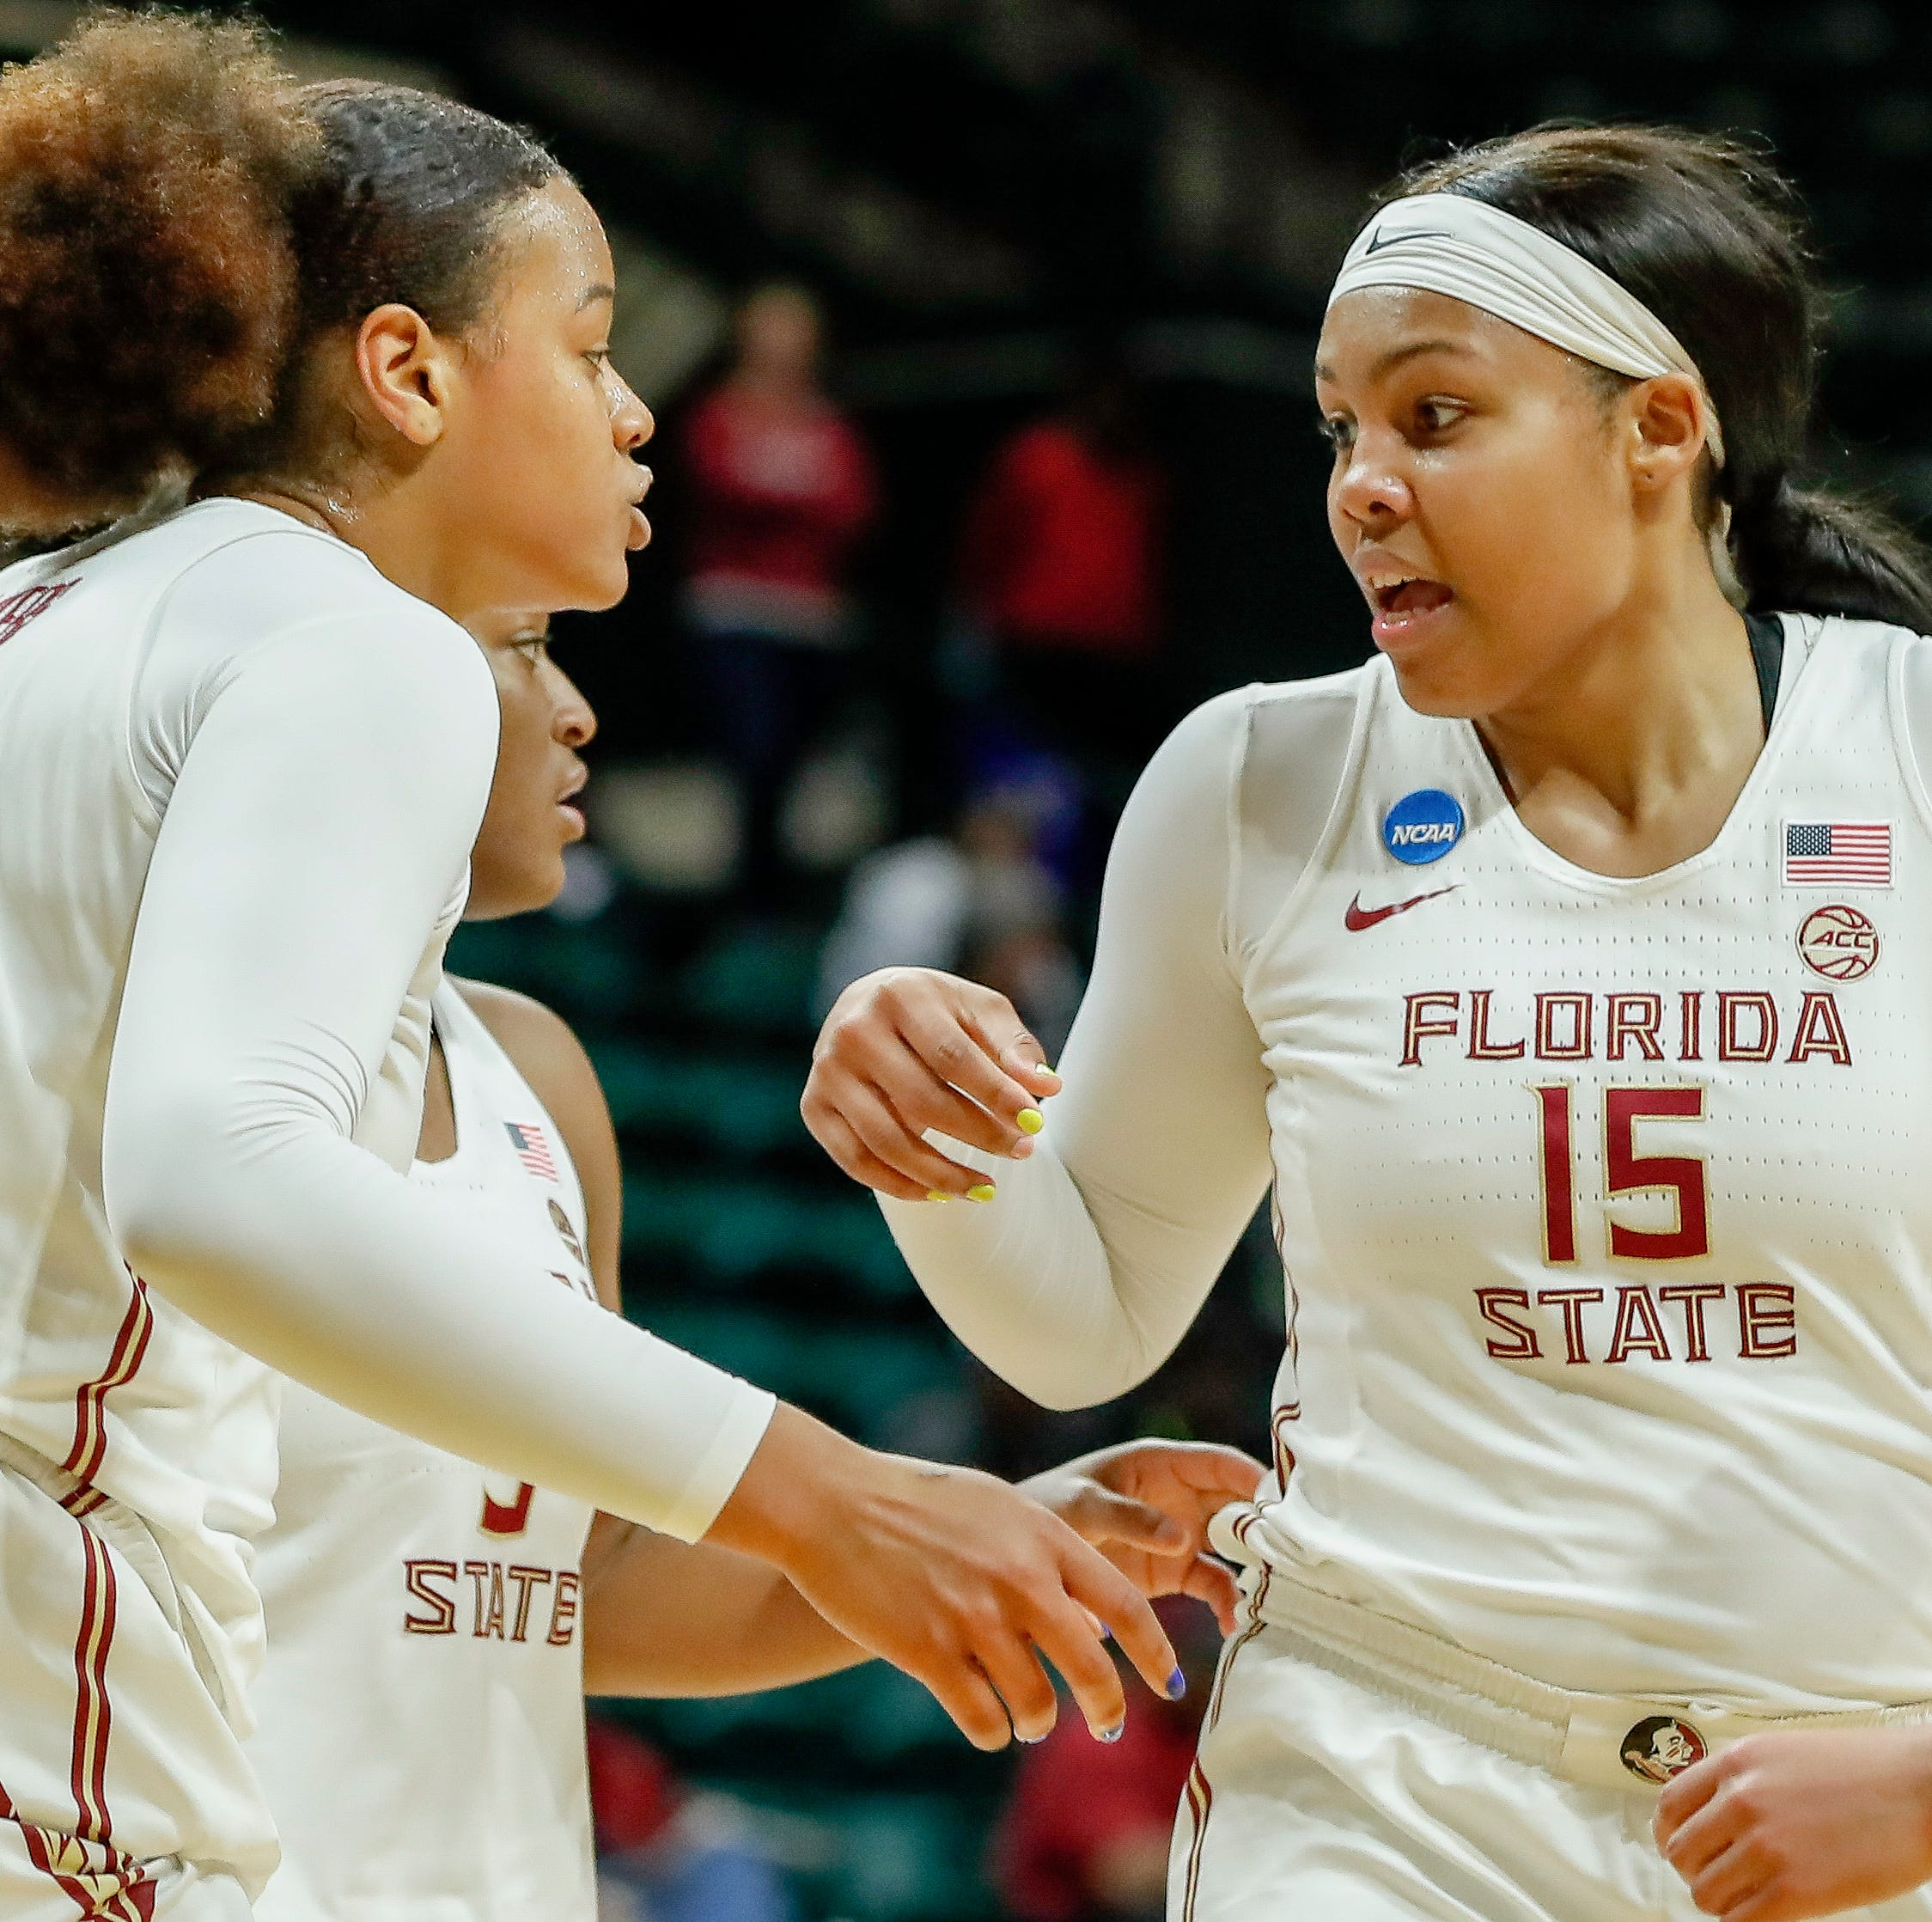 FSU outlasts Bucknell to win 16th consecutive NCAA Tournament opener